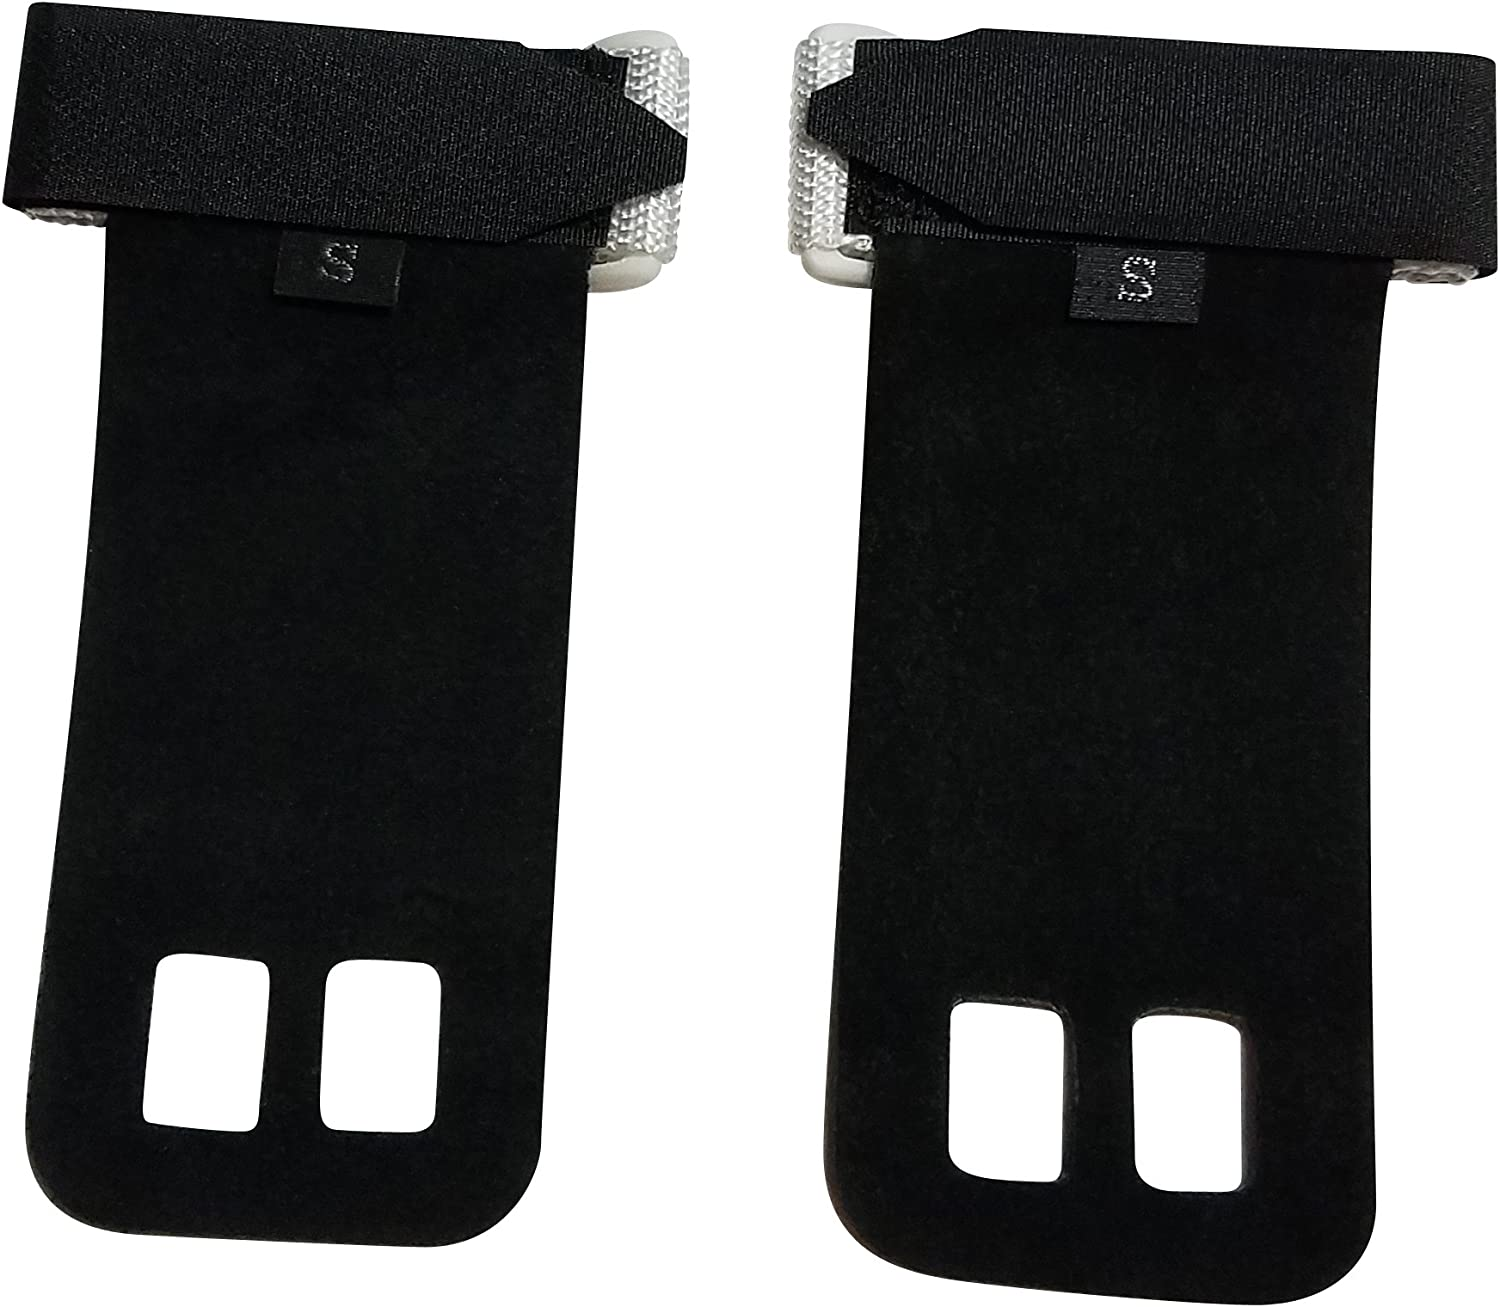 PUSH Athletic Adult Hand Grips Special Campaign Cross for Philadelphia Mall Fit WOD Gymnastics